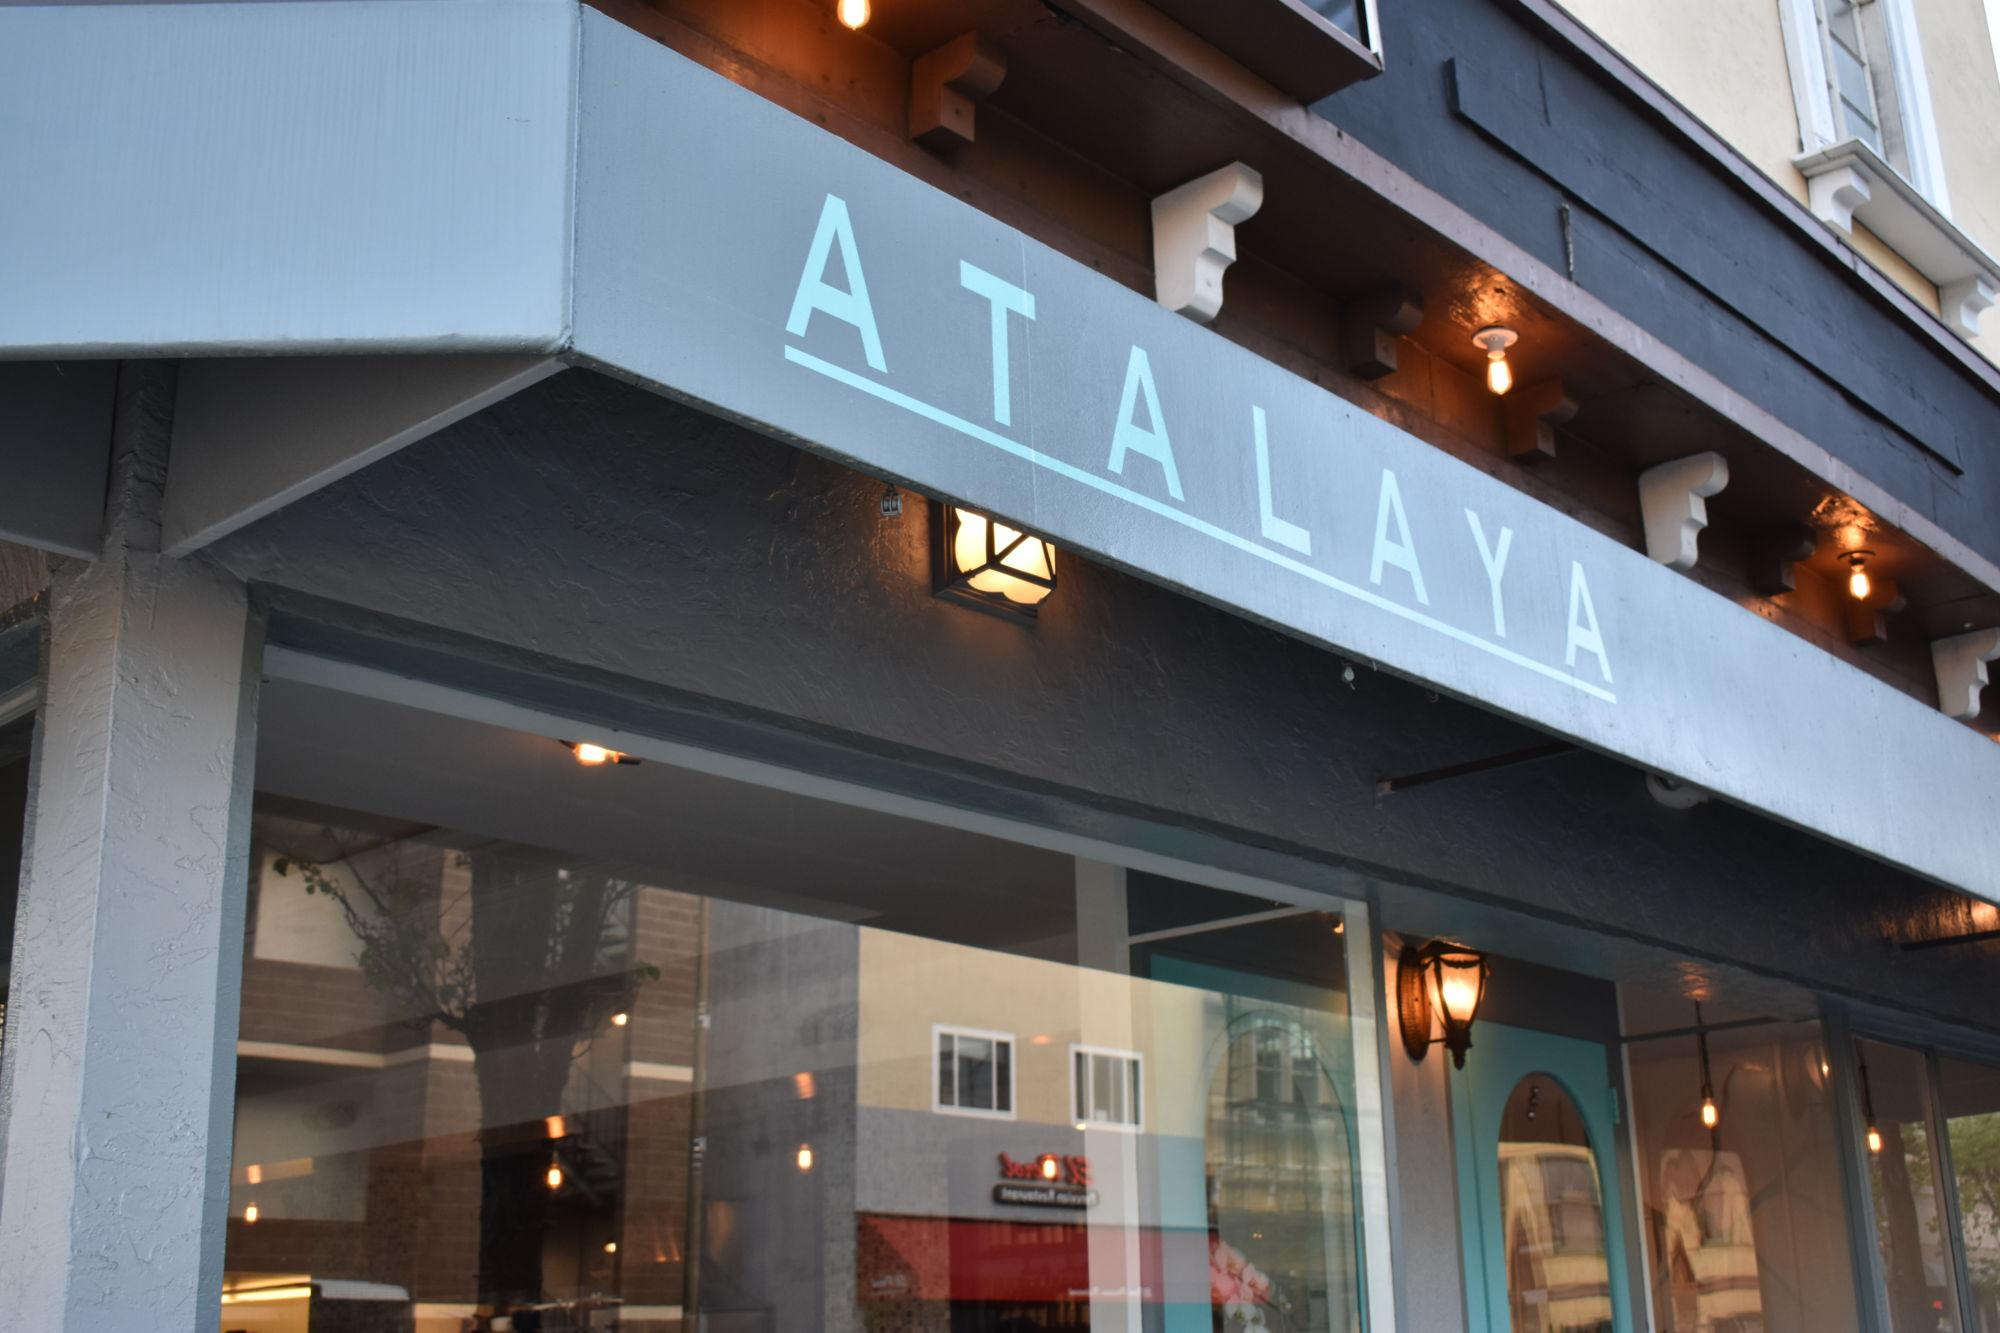 Atalaya Cafe offers casual twist in Marin